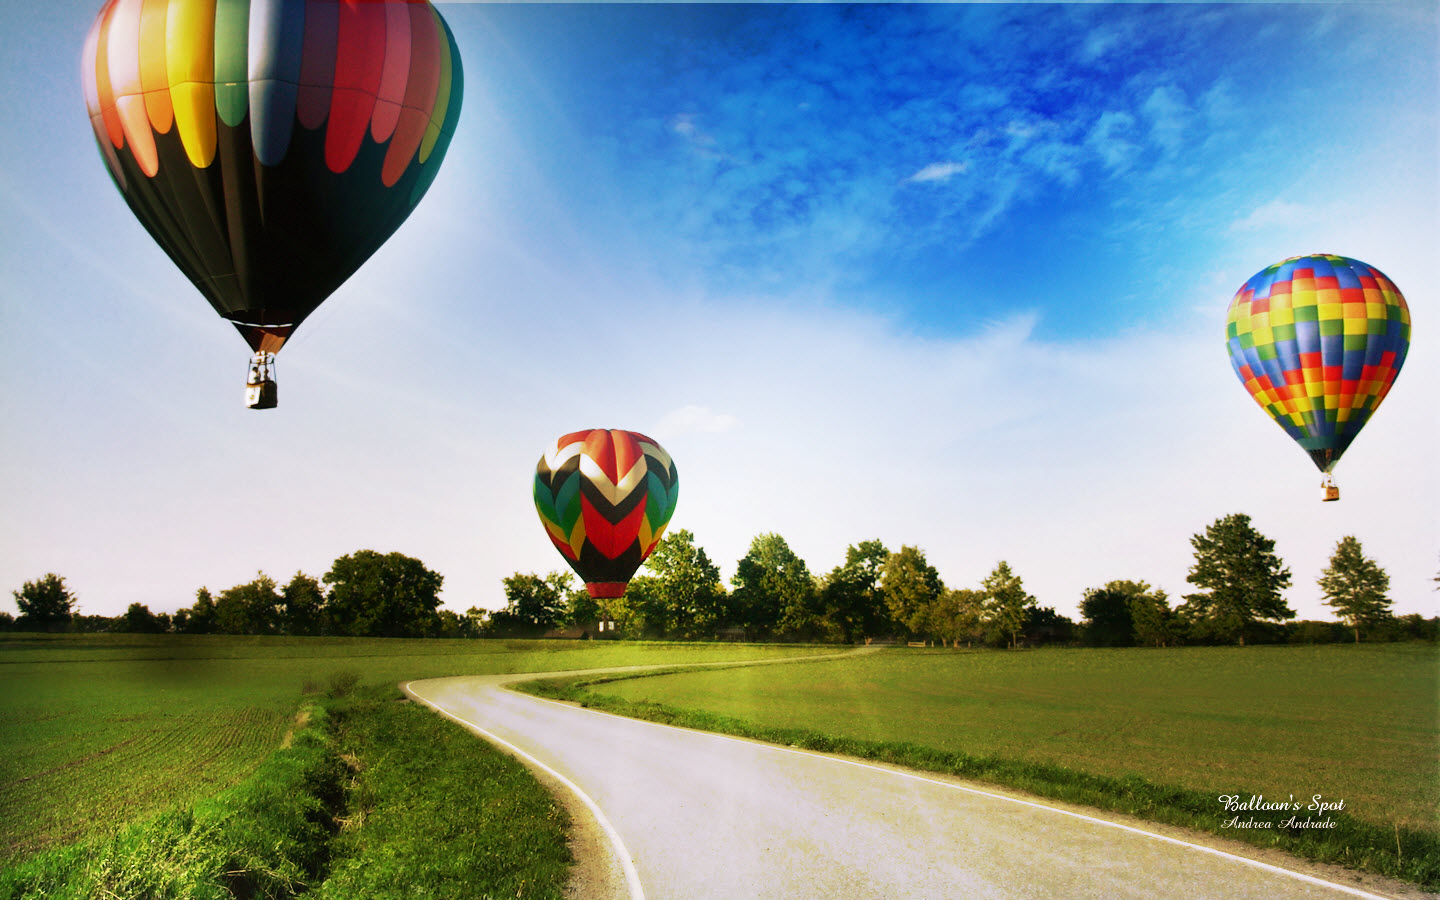 Many Beautiful Balloons In The Sky : wallpaper_of_beautiful_scenery_colorful_balloons_in_the_sky_.jpg